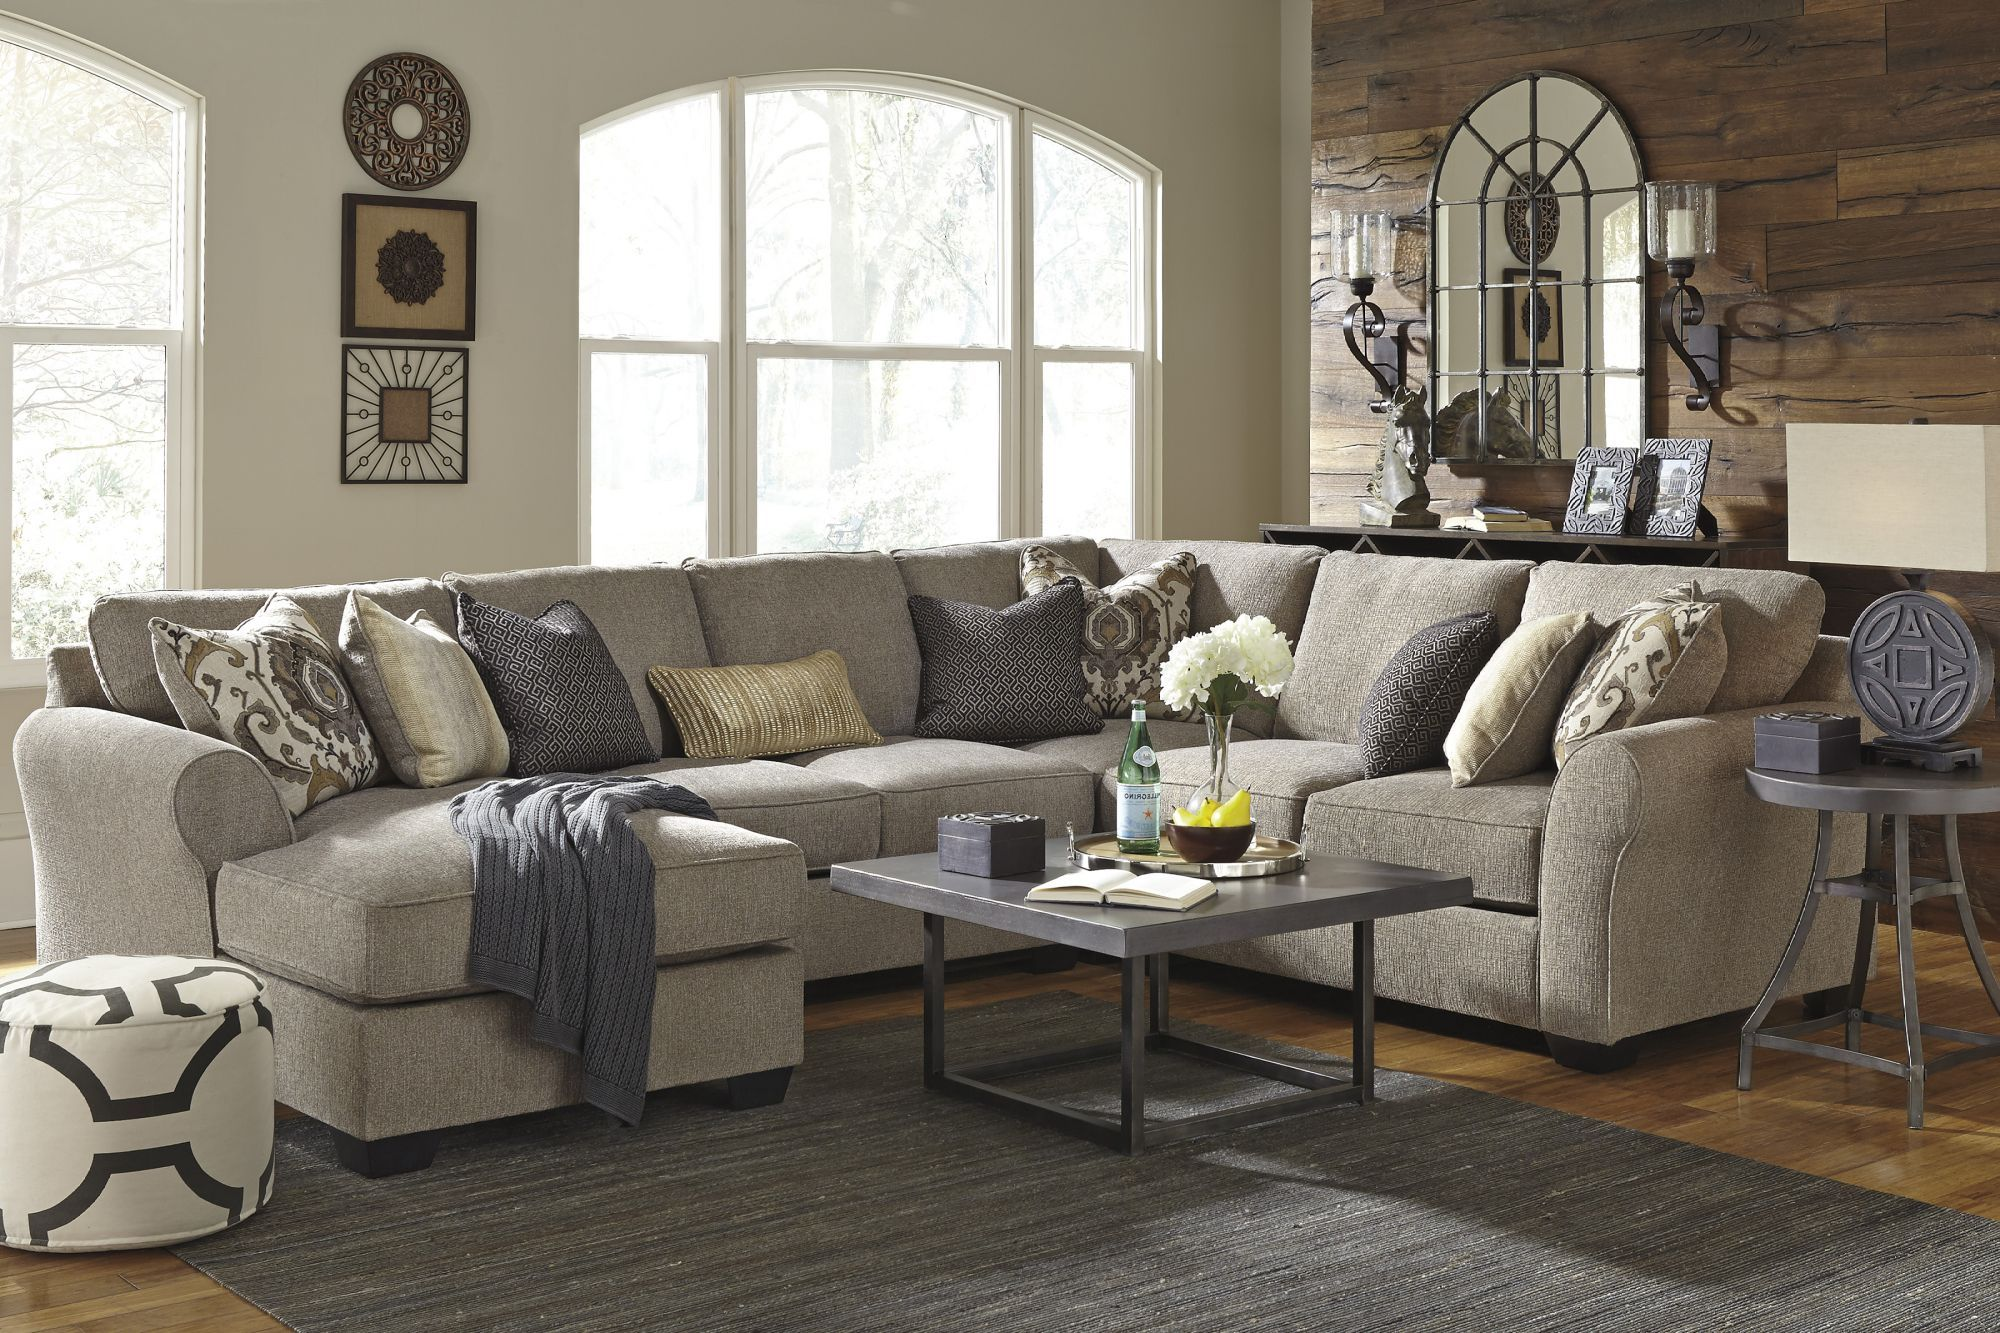 Pantomine 4 Piece Sectional Woodstock Furniture Outlet Suburban Furniture Livingroom Layout Brown Living Room Decor